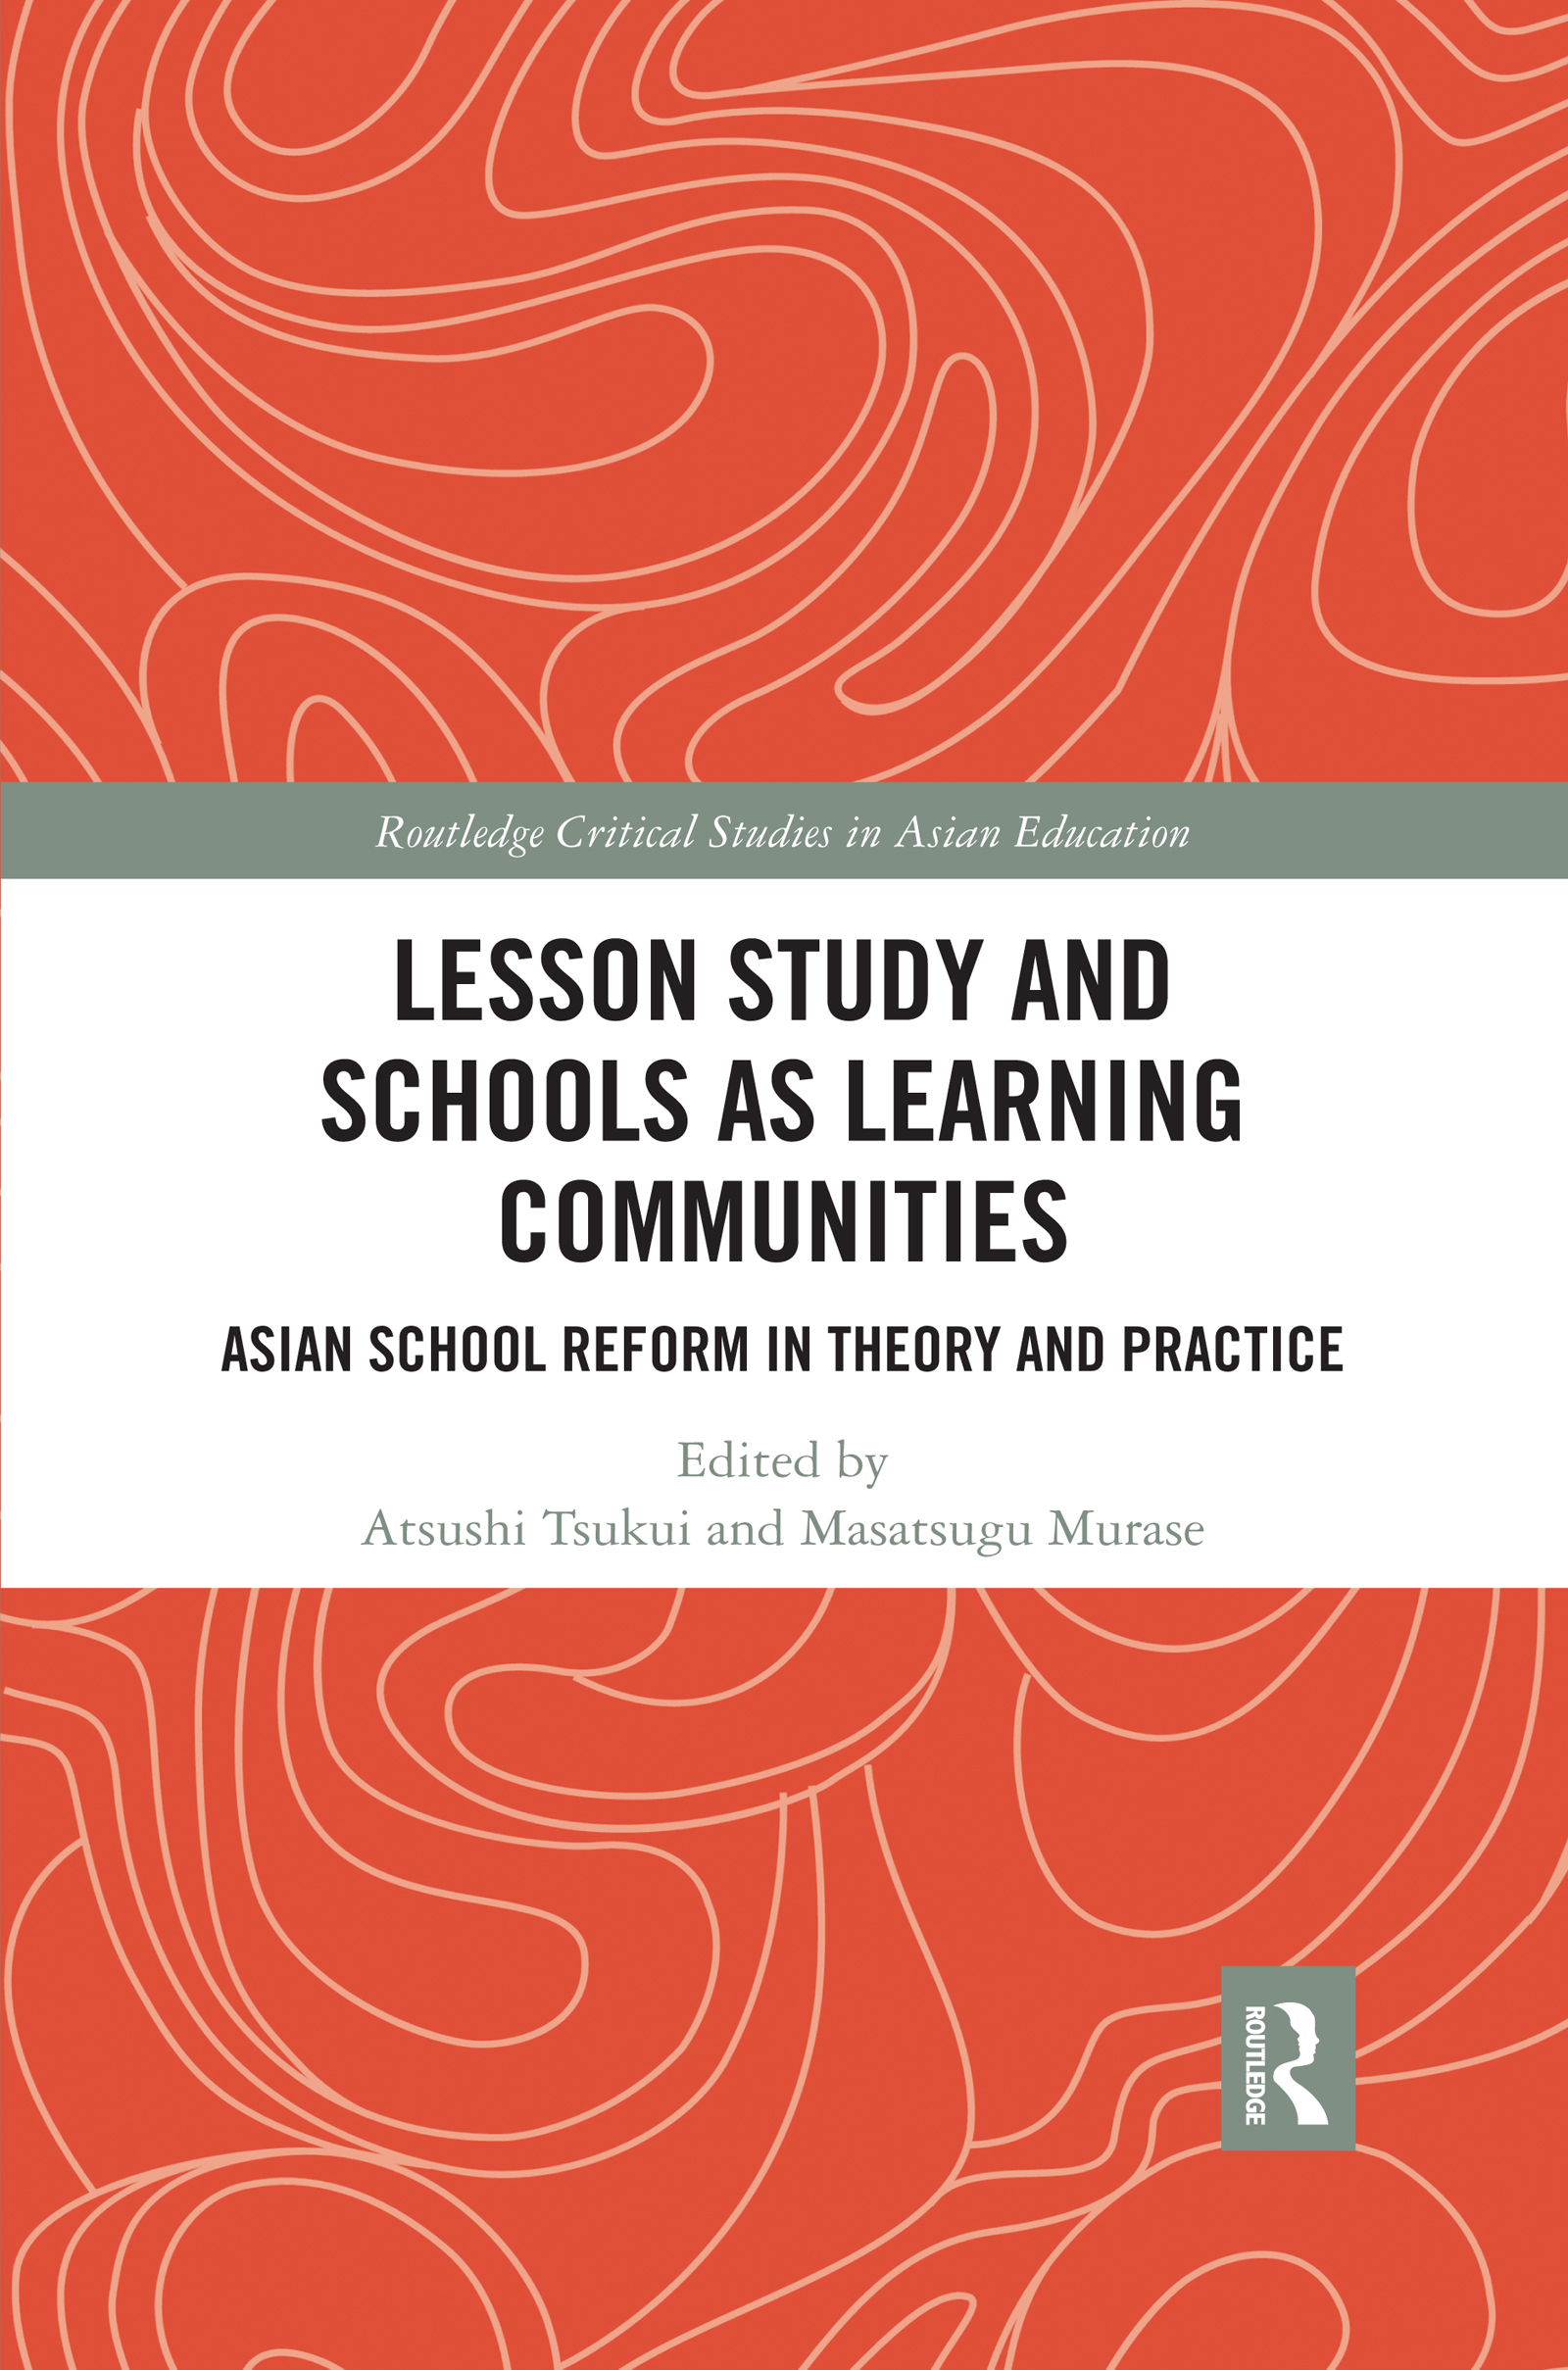 Lesson Study and Schools as Learning Communities